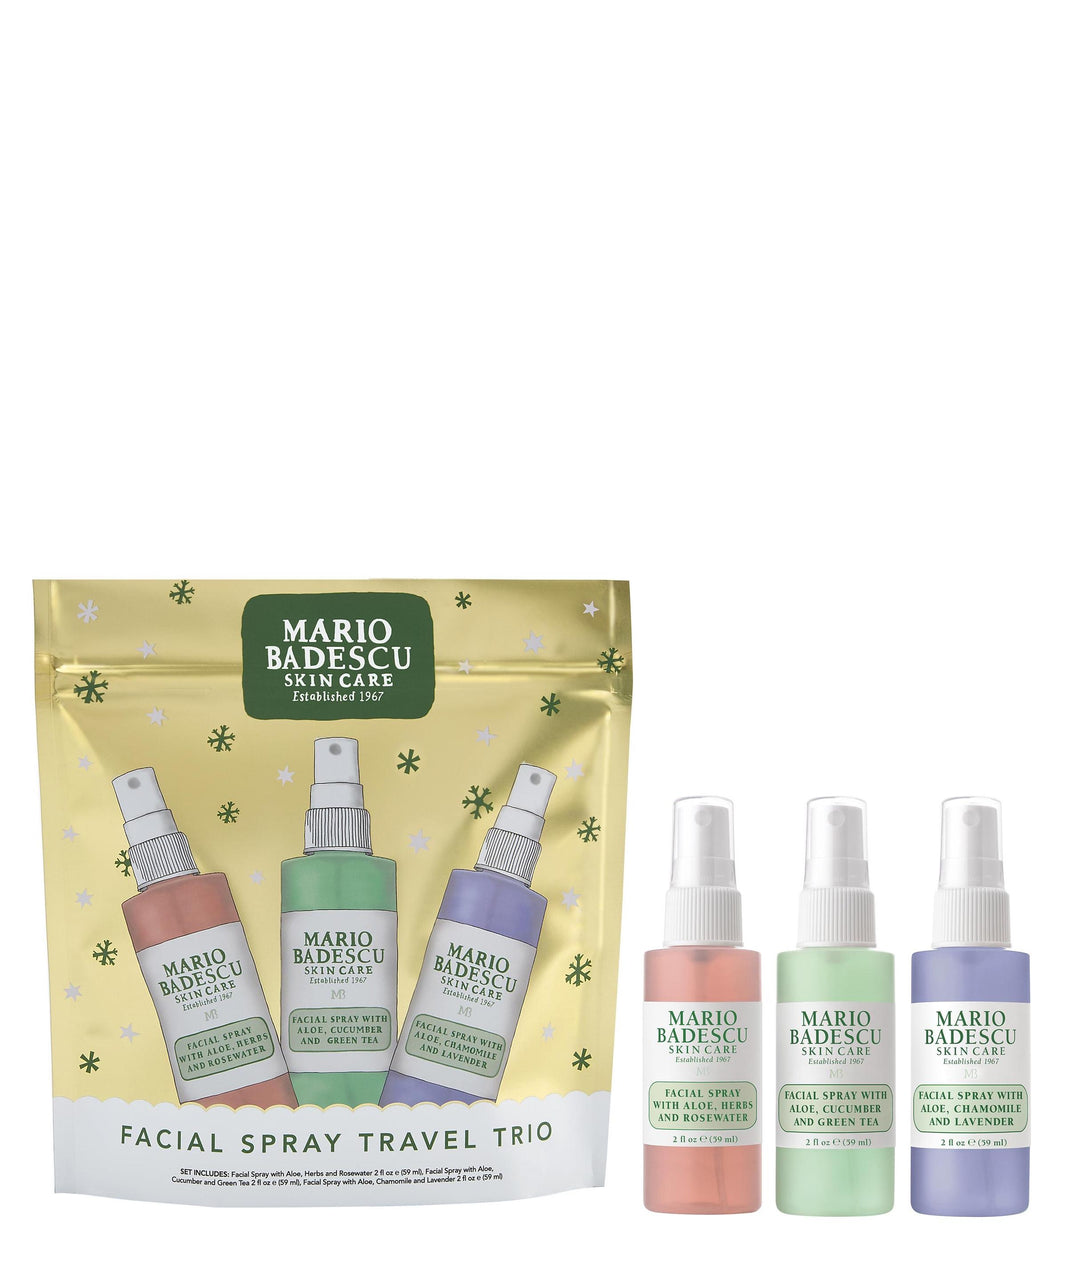 Mario Badescu - Facial Spray Trio Travel Edition